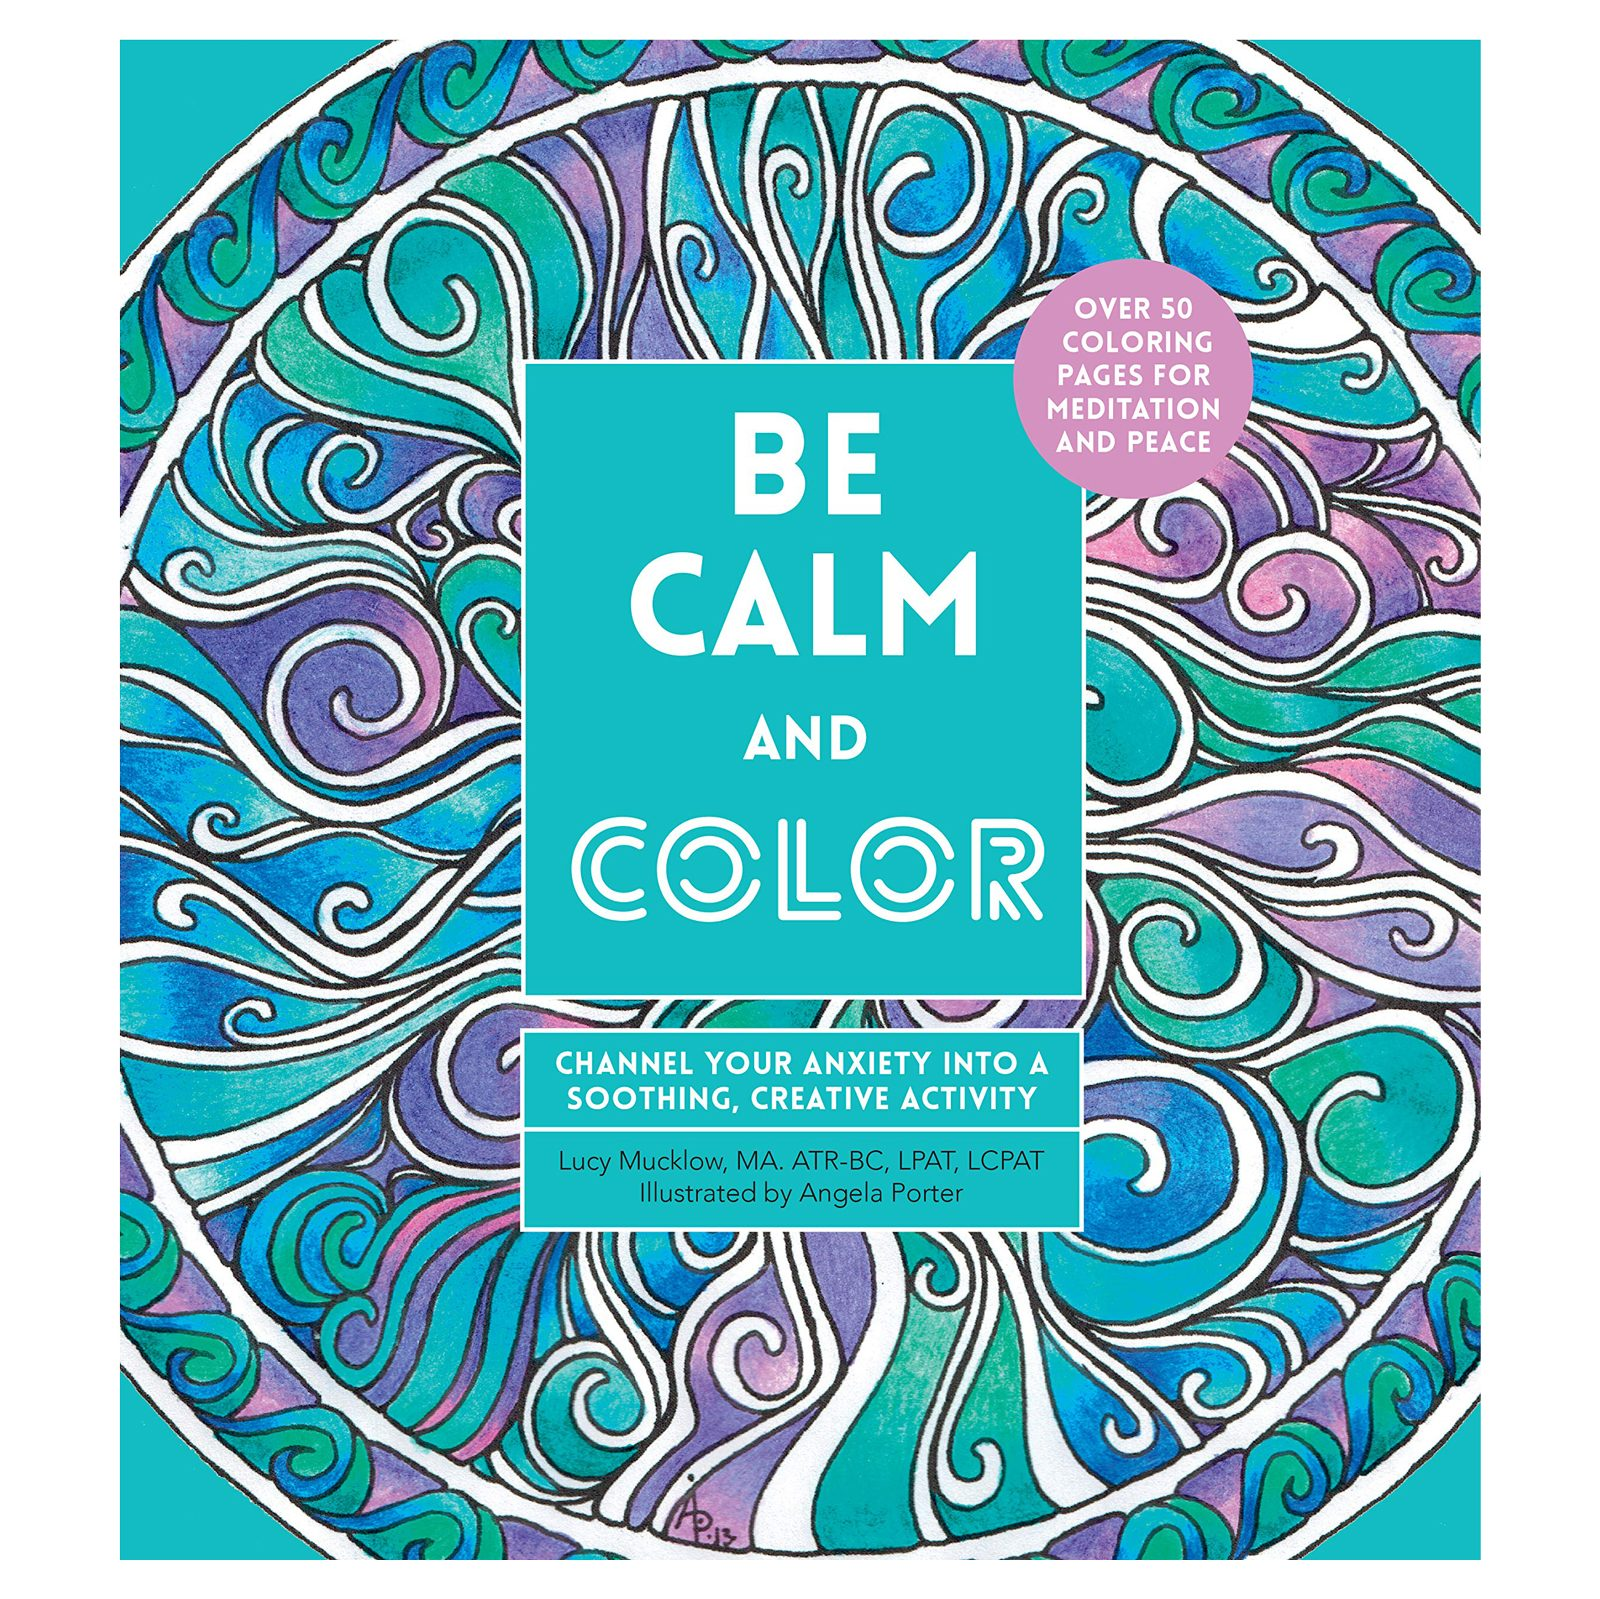 Be Calm and Color